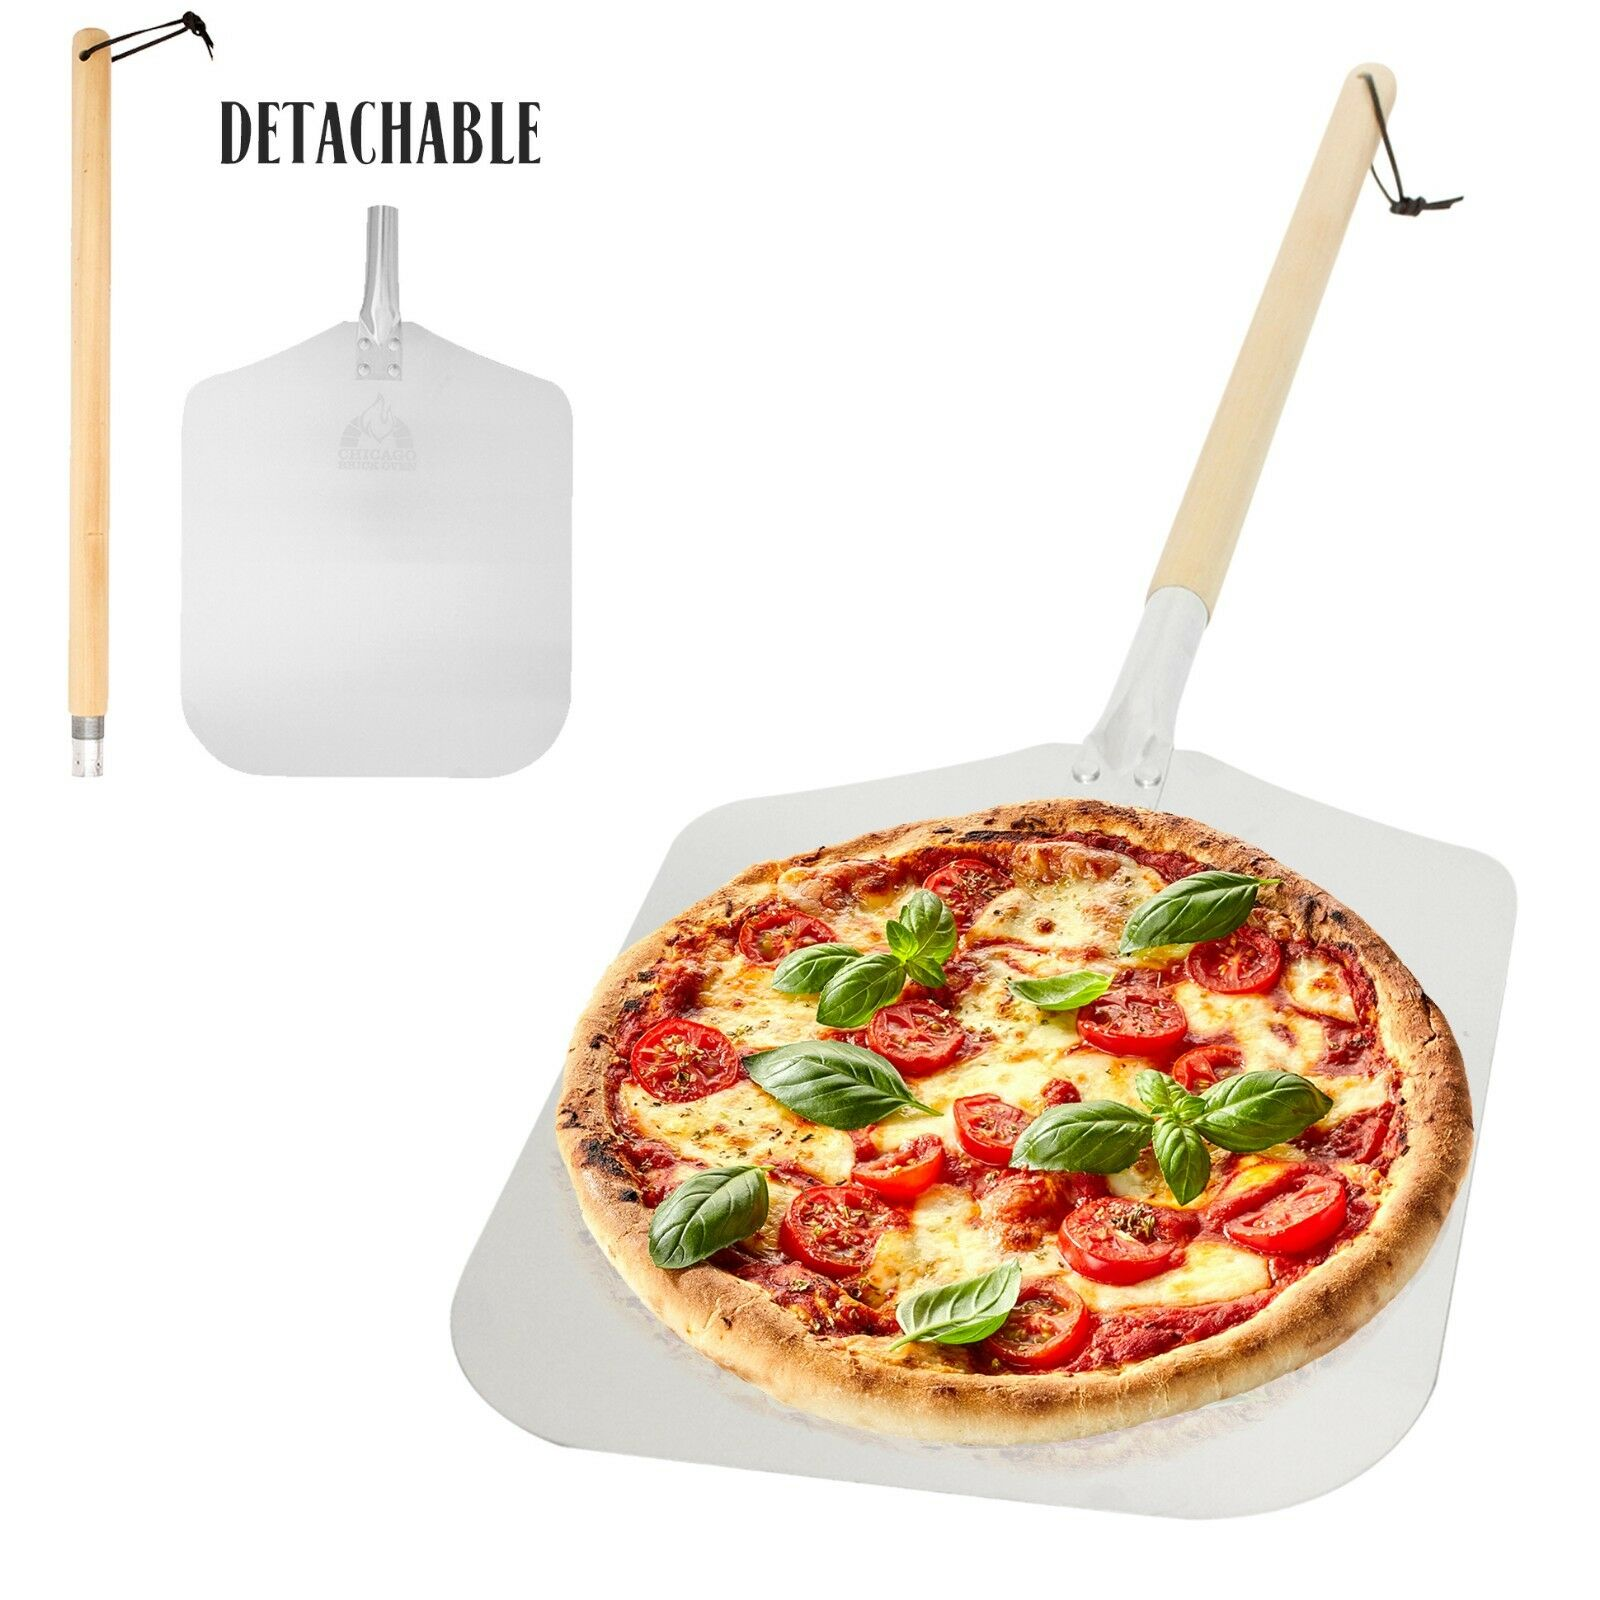 Aluminum Metal Pizza Peels with Foldable Wood Handle Pizza Peels for Baking and Homemade Pizza Lovers by ZMYBCPACK 12x14 inch Pizza Paddle for Baking Pizza/&Bread